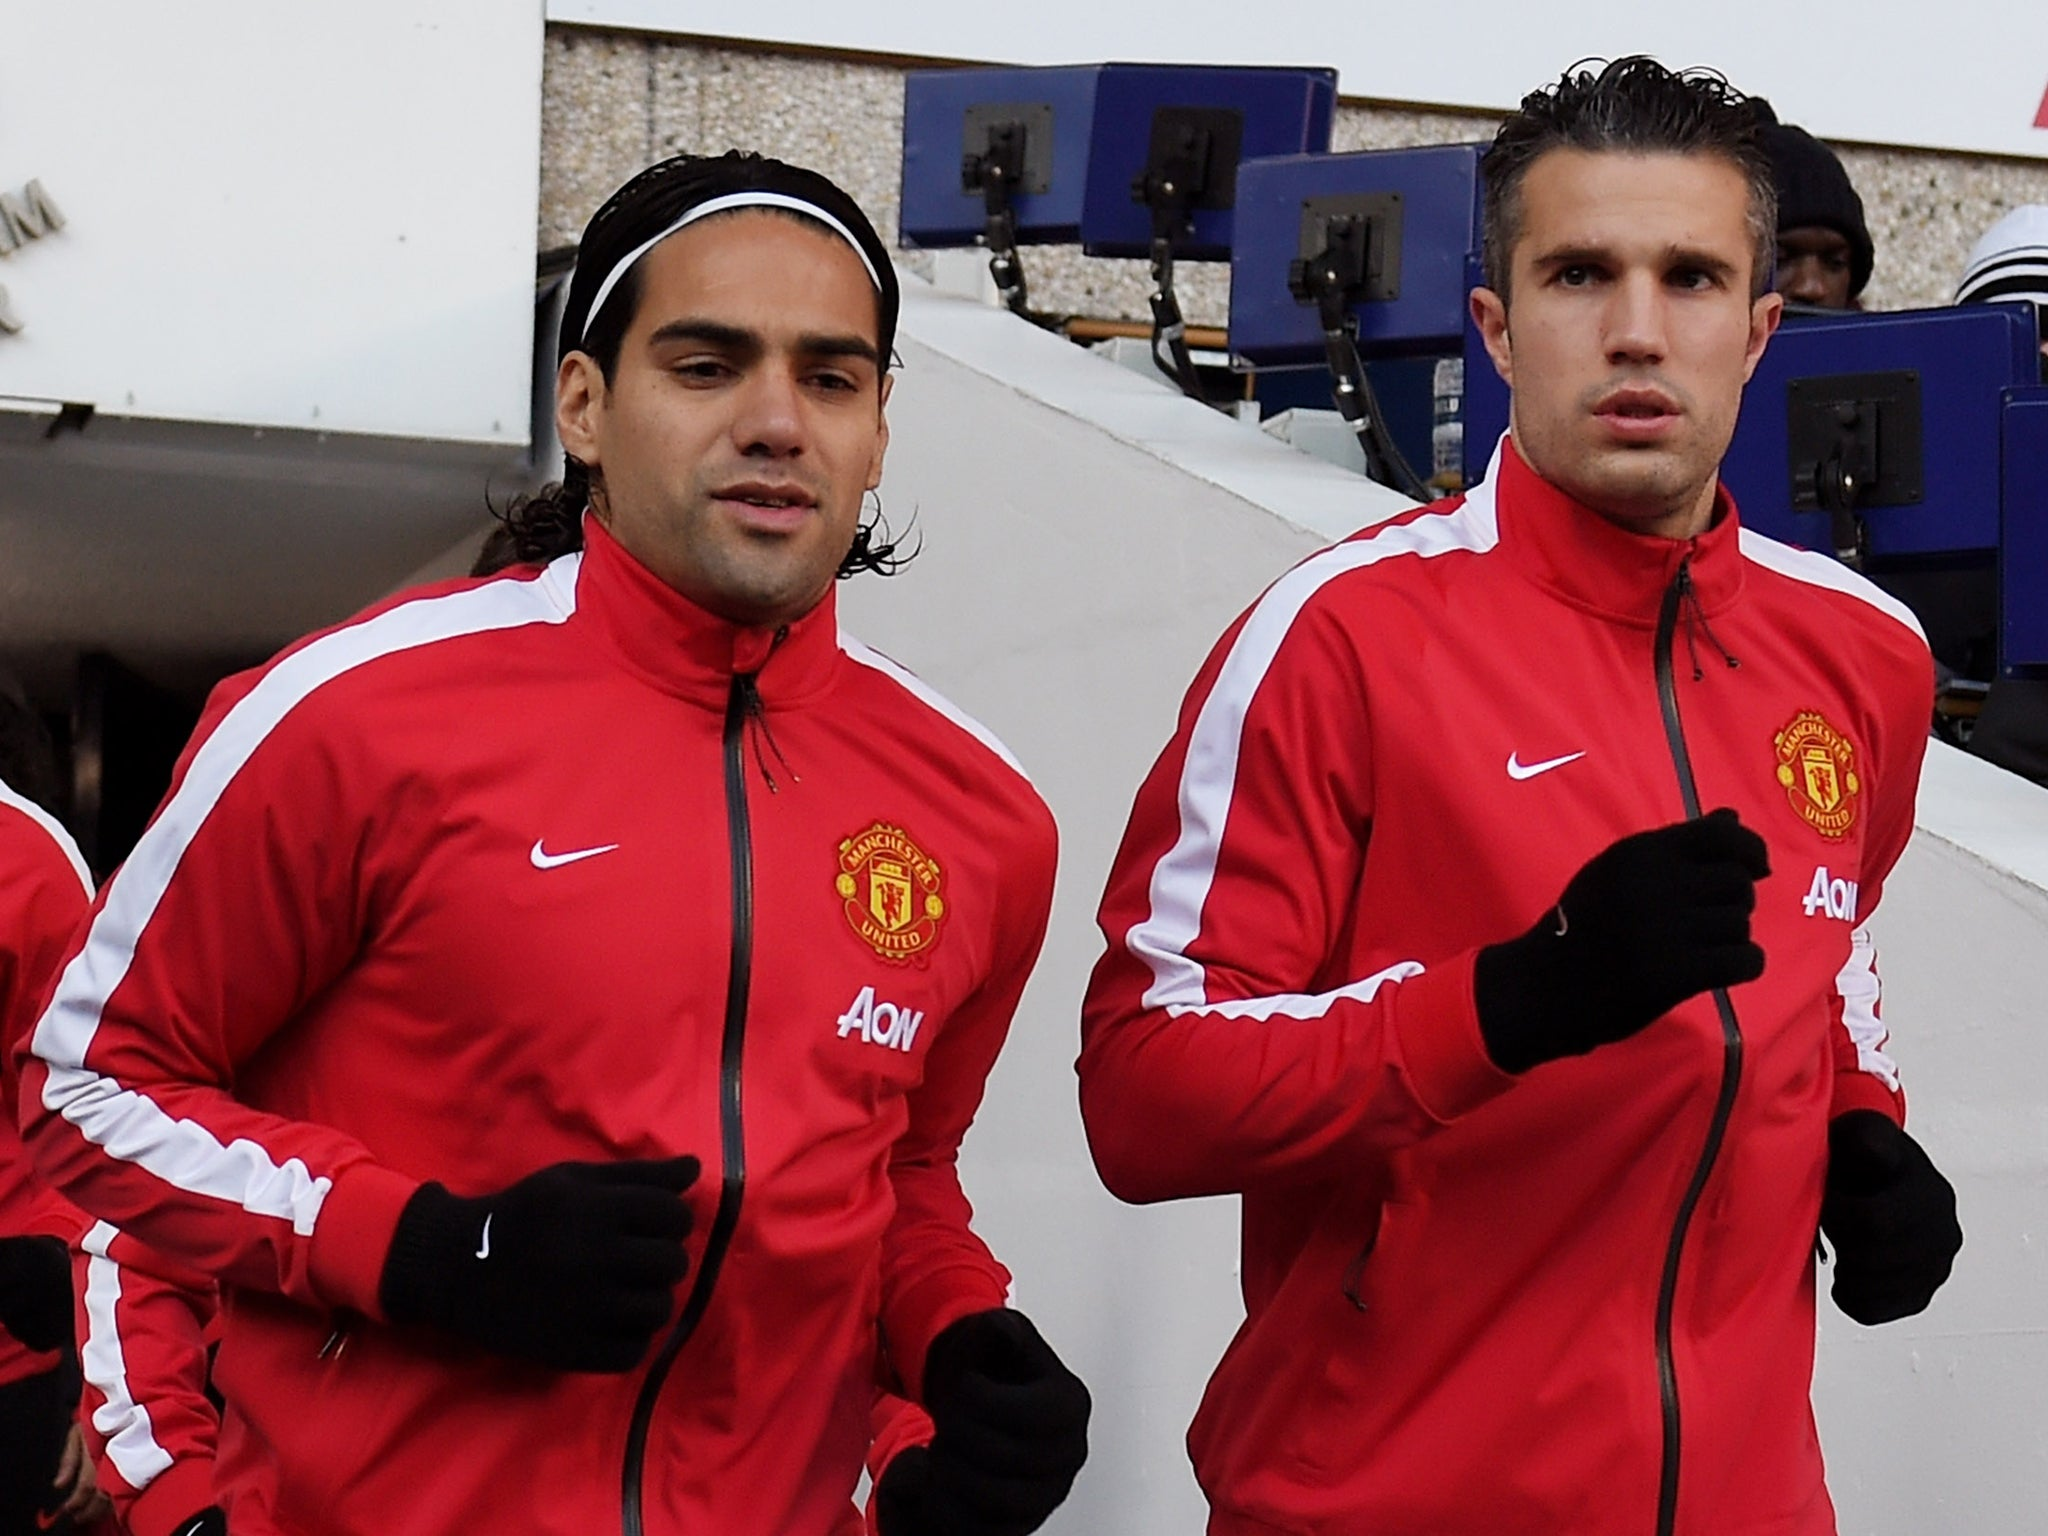 Manchester United injury news: Robin van Persie returns providing headache over Radamel Falcao and Wayne Rooney roles